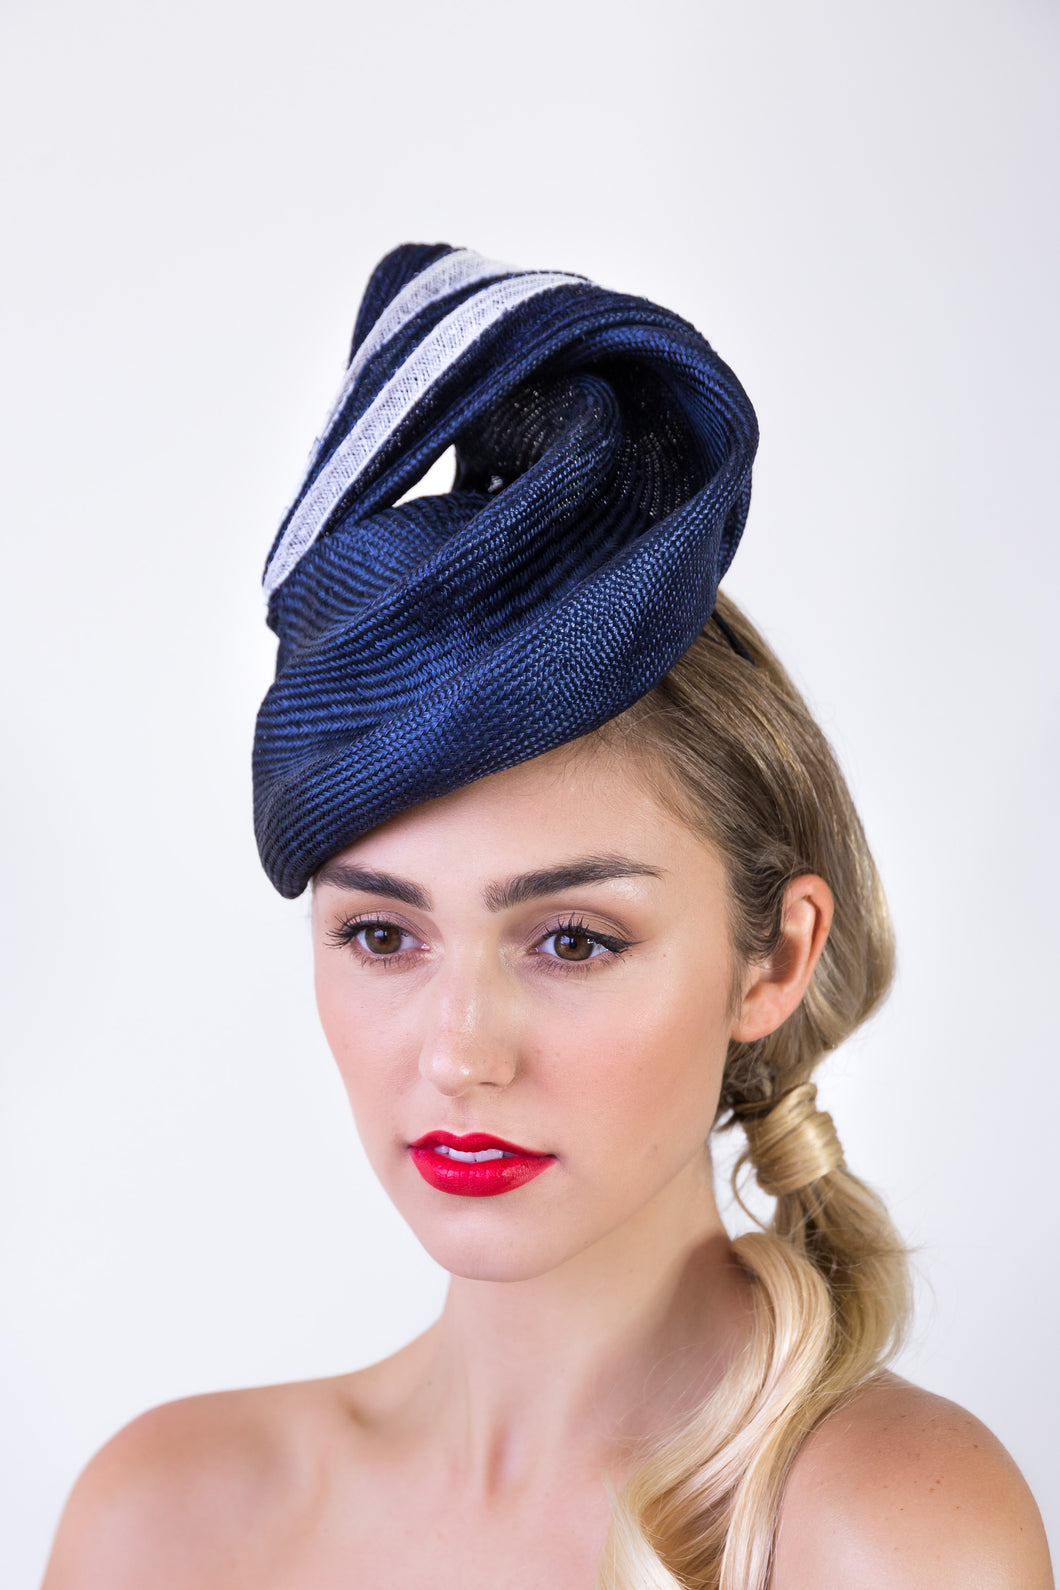 MARJORAM BERET- Navy and white side sculpture beret